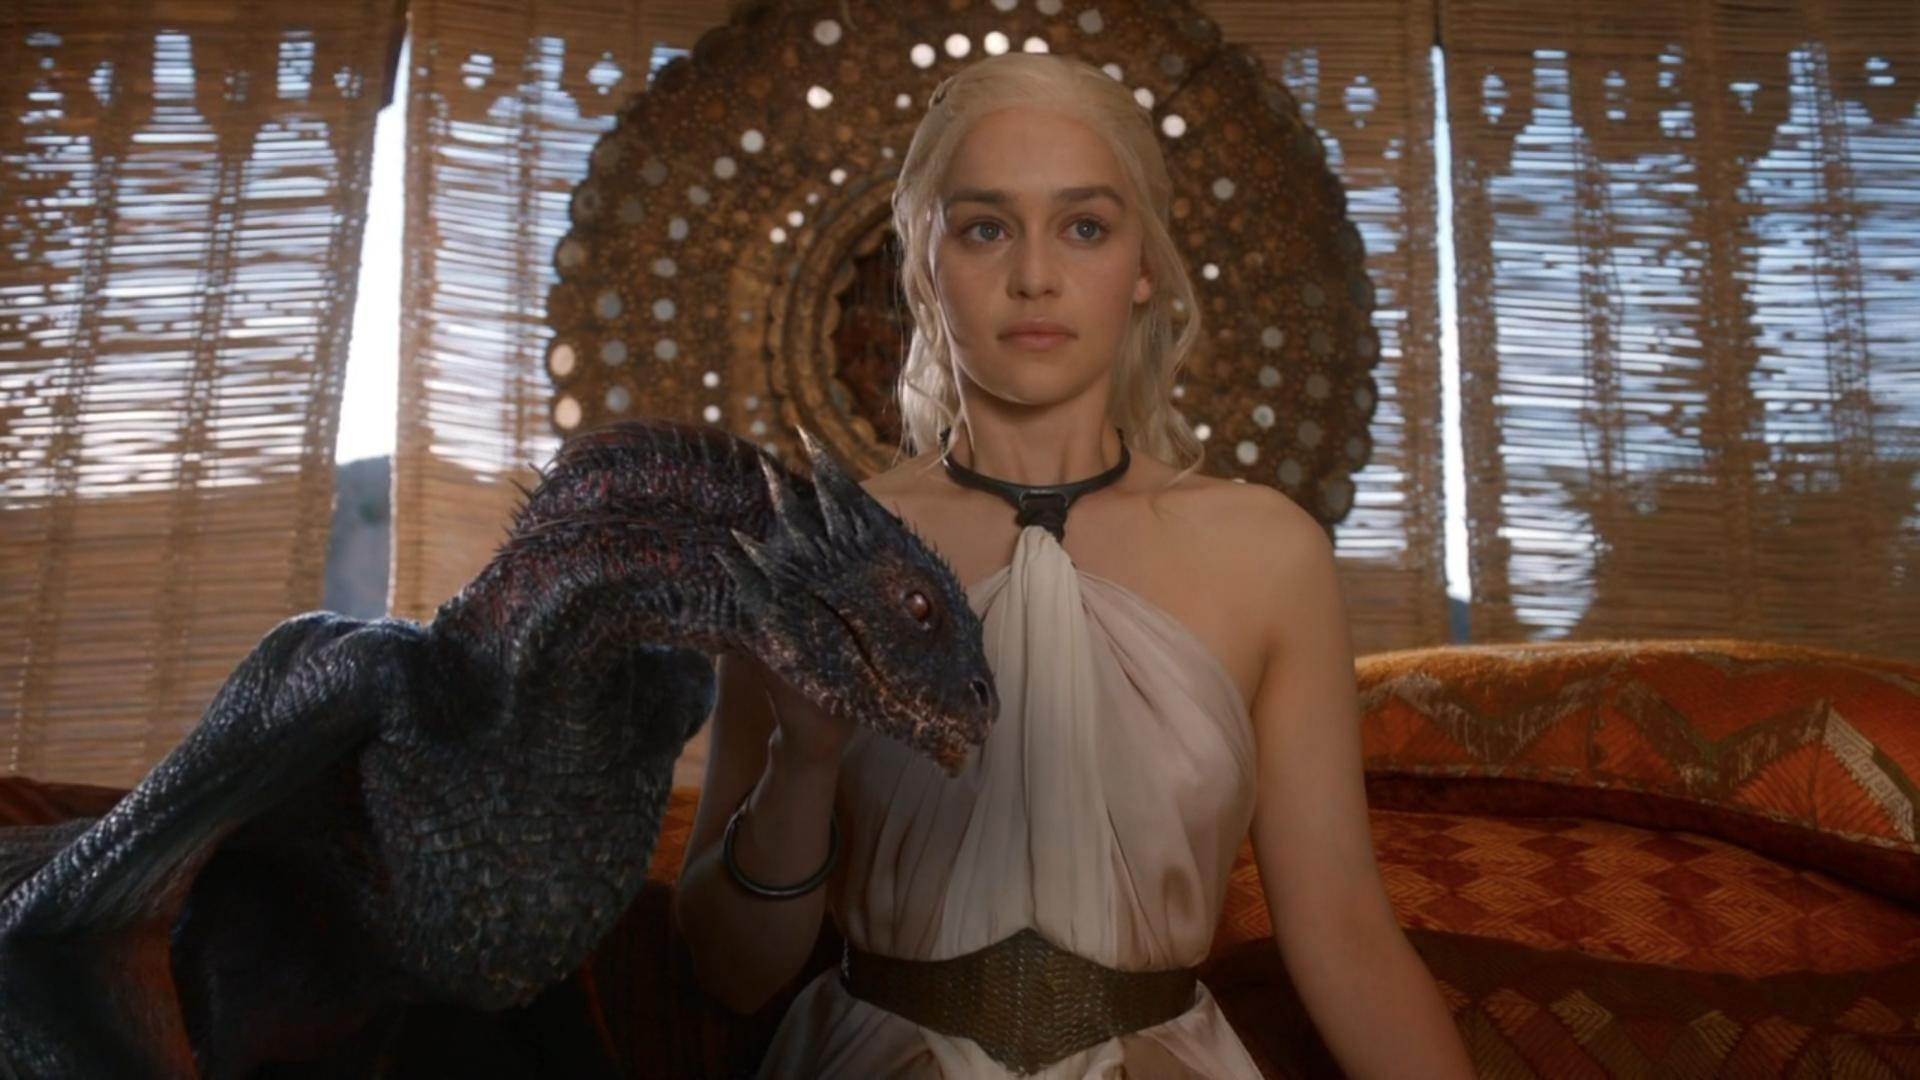 The Mother of Dragons – Daenerys Targaryen